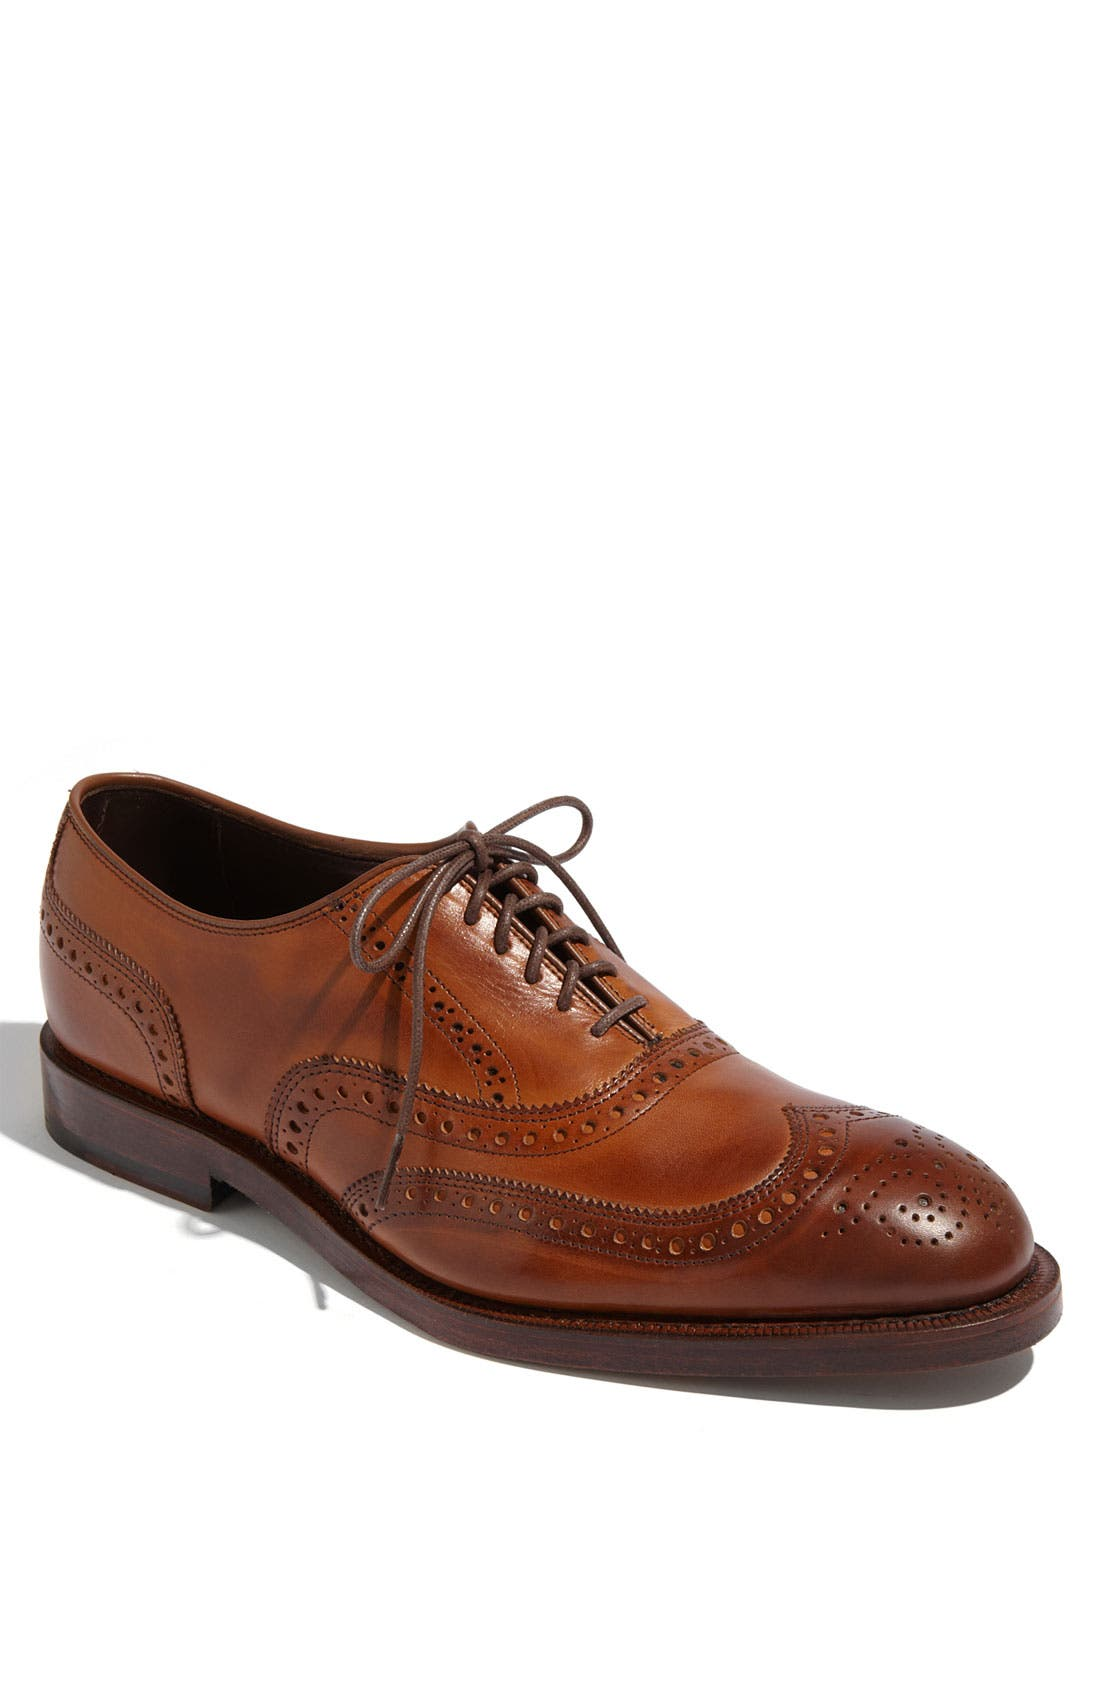 Main Image - Allen Edmonds 'The Jefferson' Wingtip Oxford (Men)